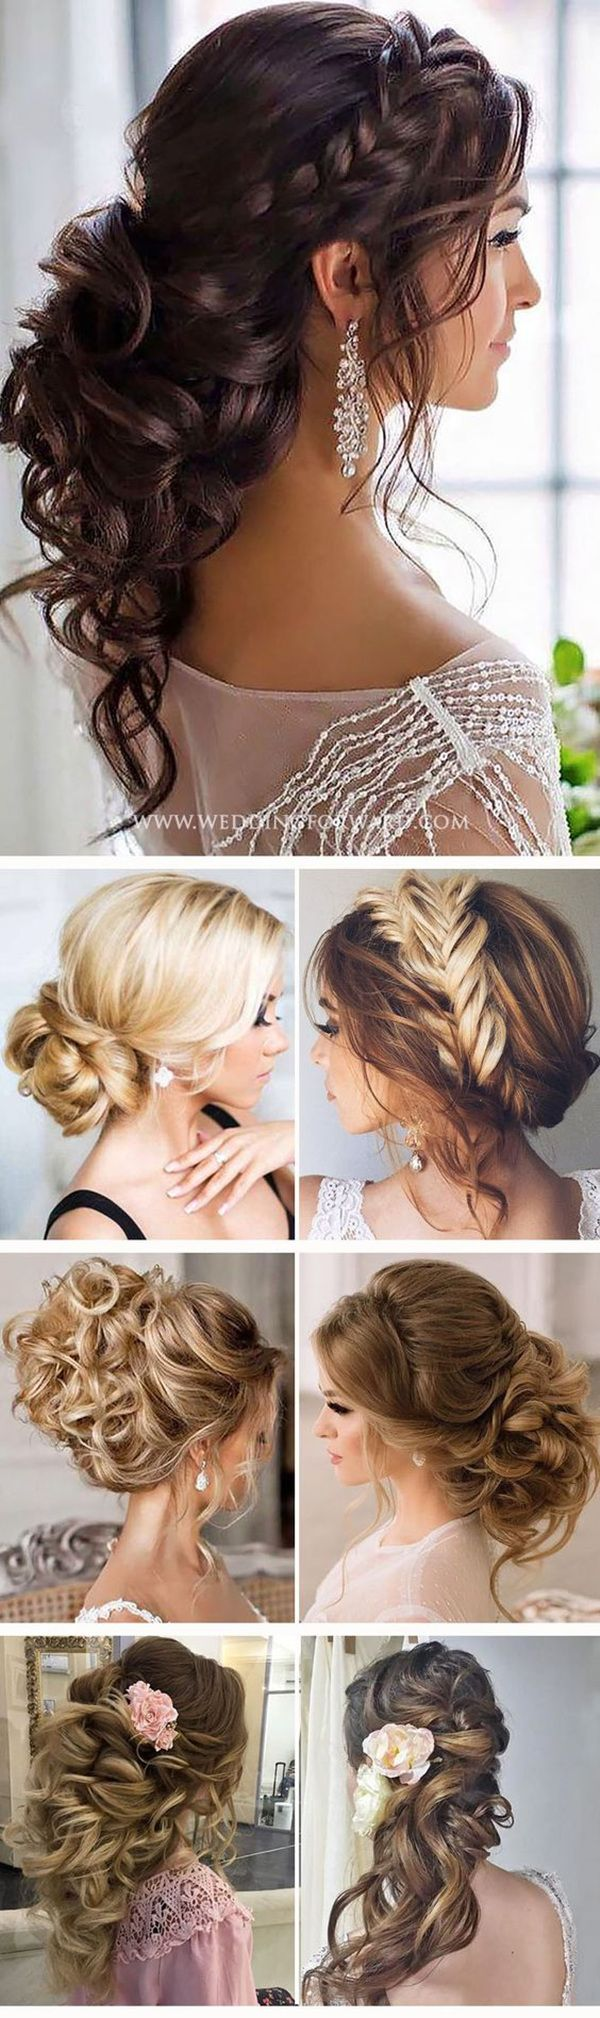 Top 20 Wedding Hairstyles You Ll Love For 2018 Trends Oh Best Day Ever Wedding Hair Inspiration Wedding Hairstyles For Long Hair Medium Hair Styles